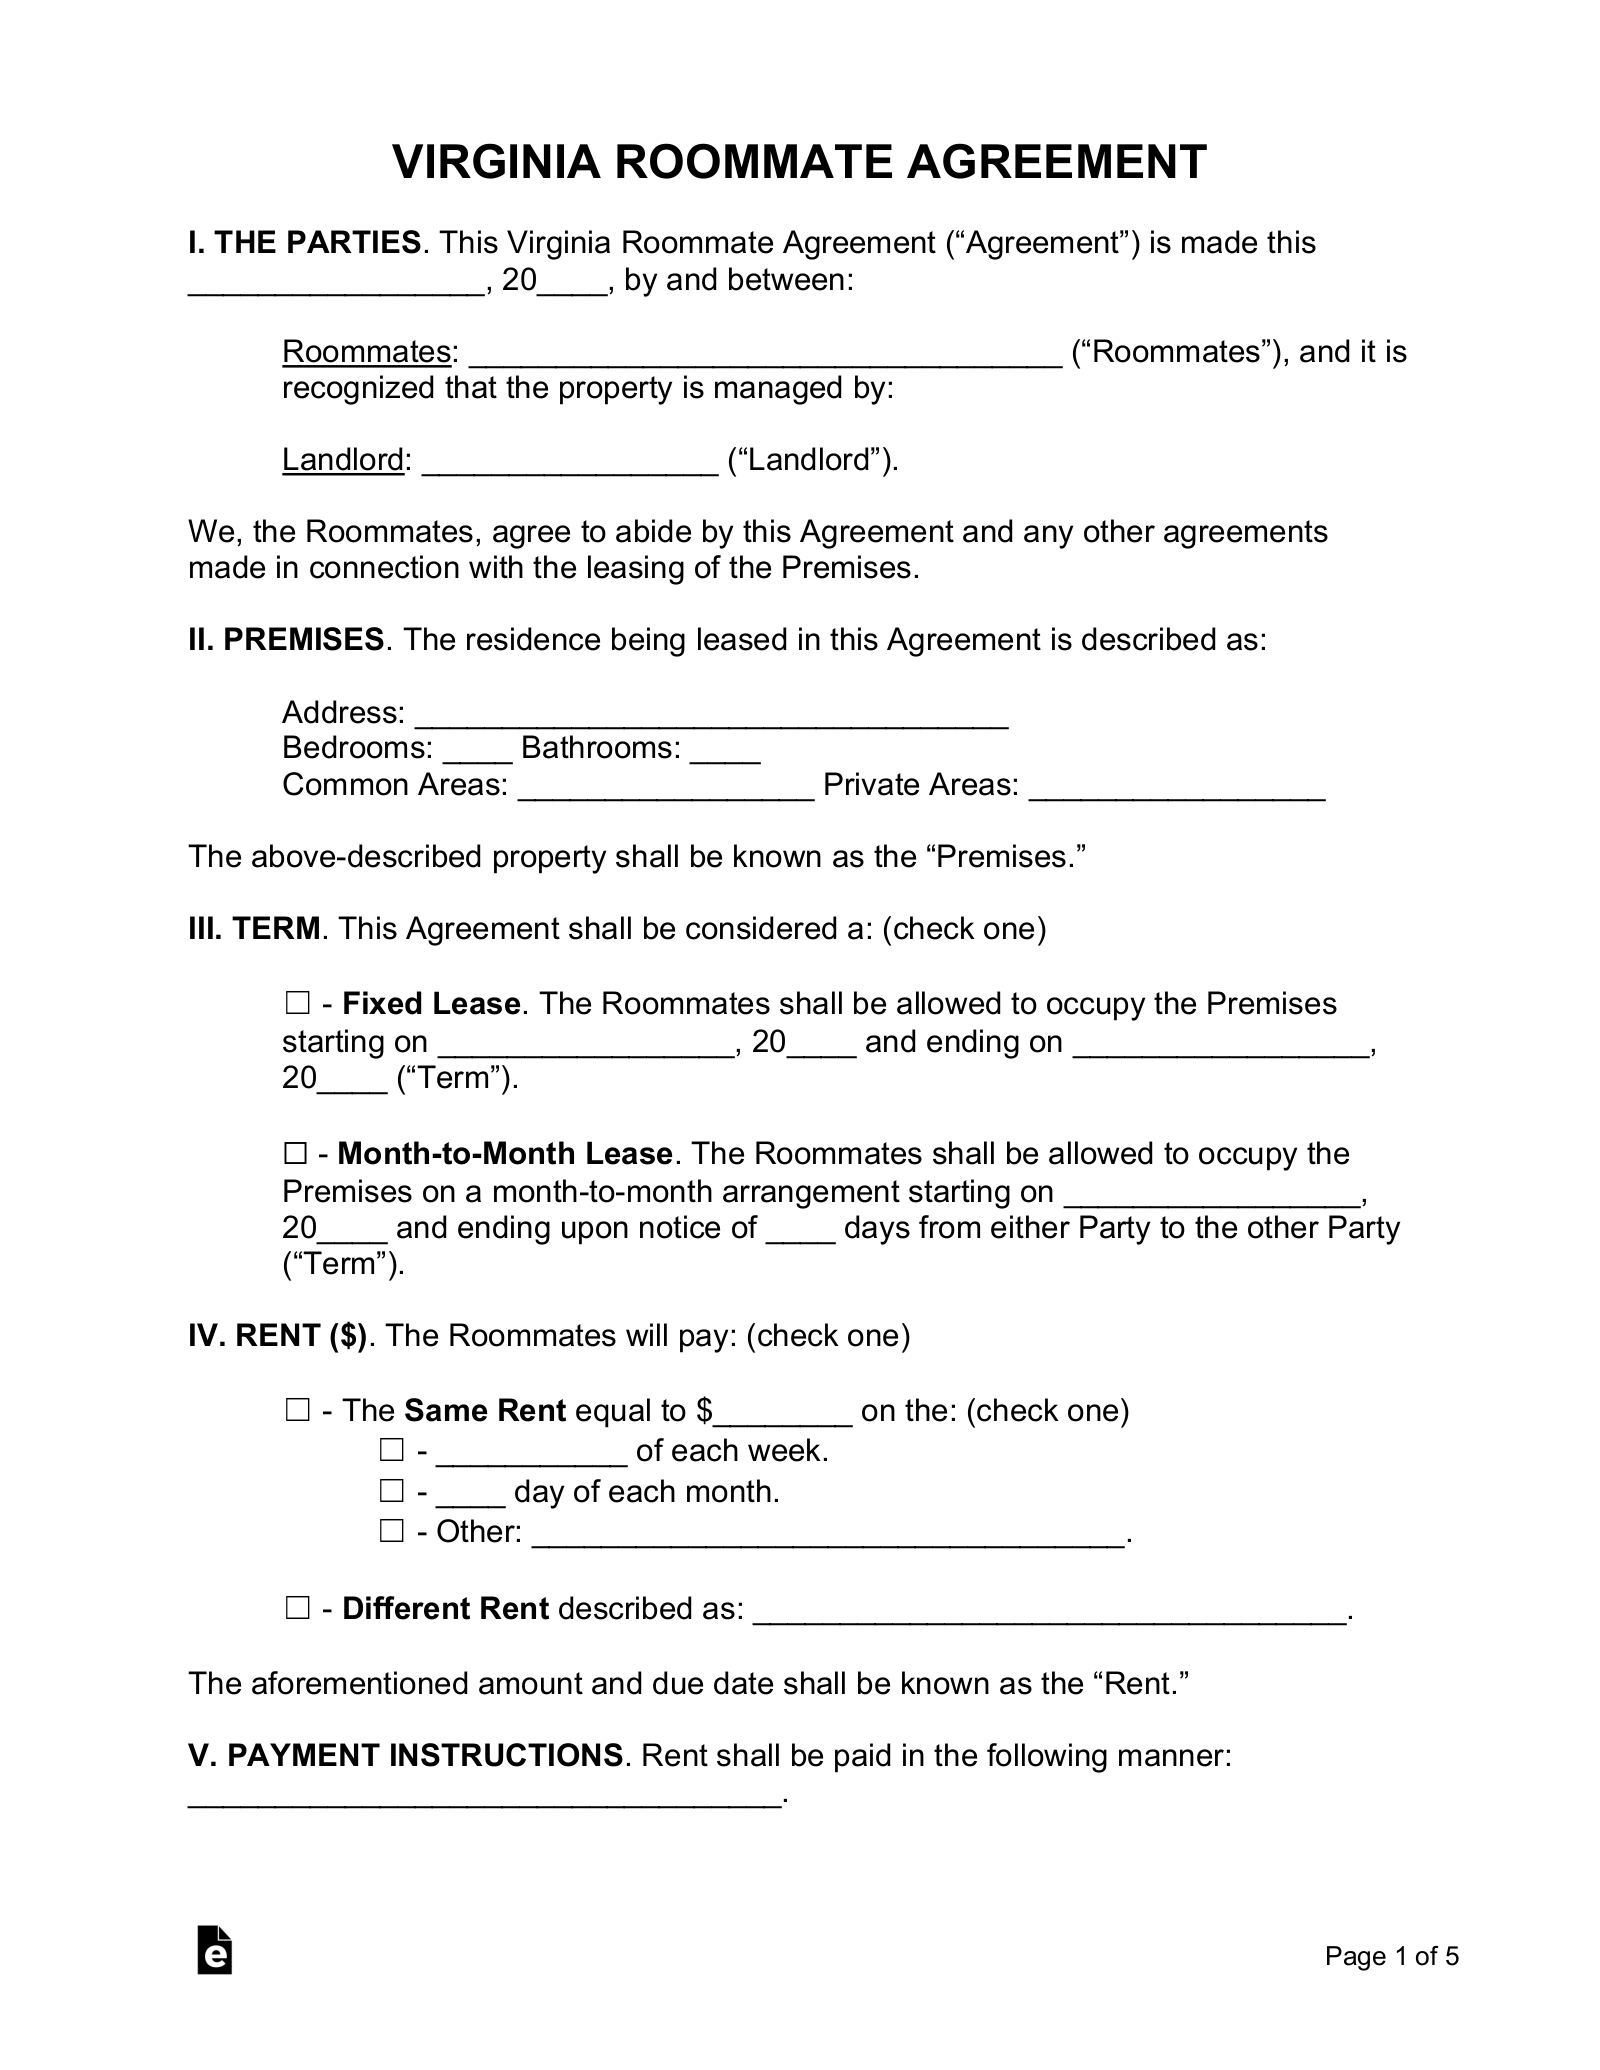 Free Virginia Roommate Agreement Room Rental Form Pdf